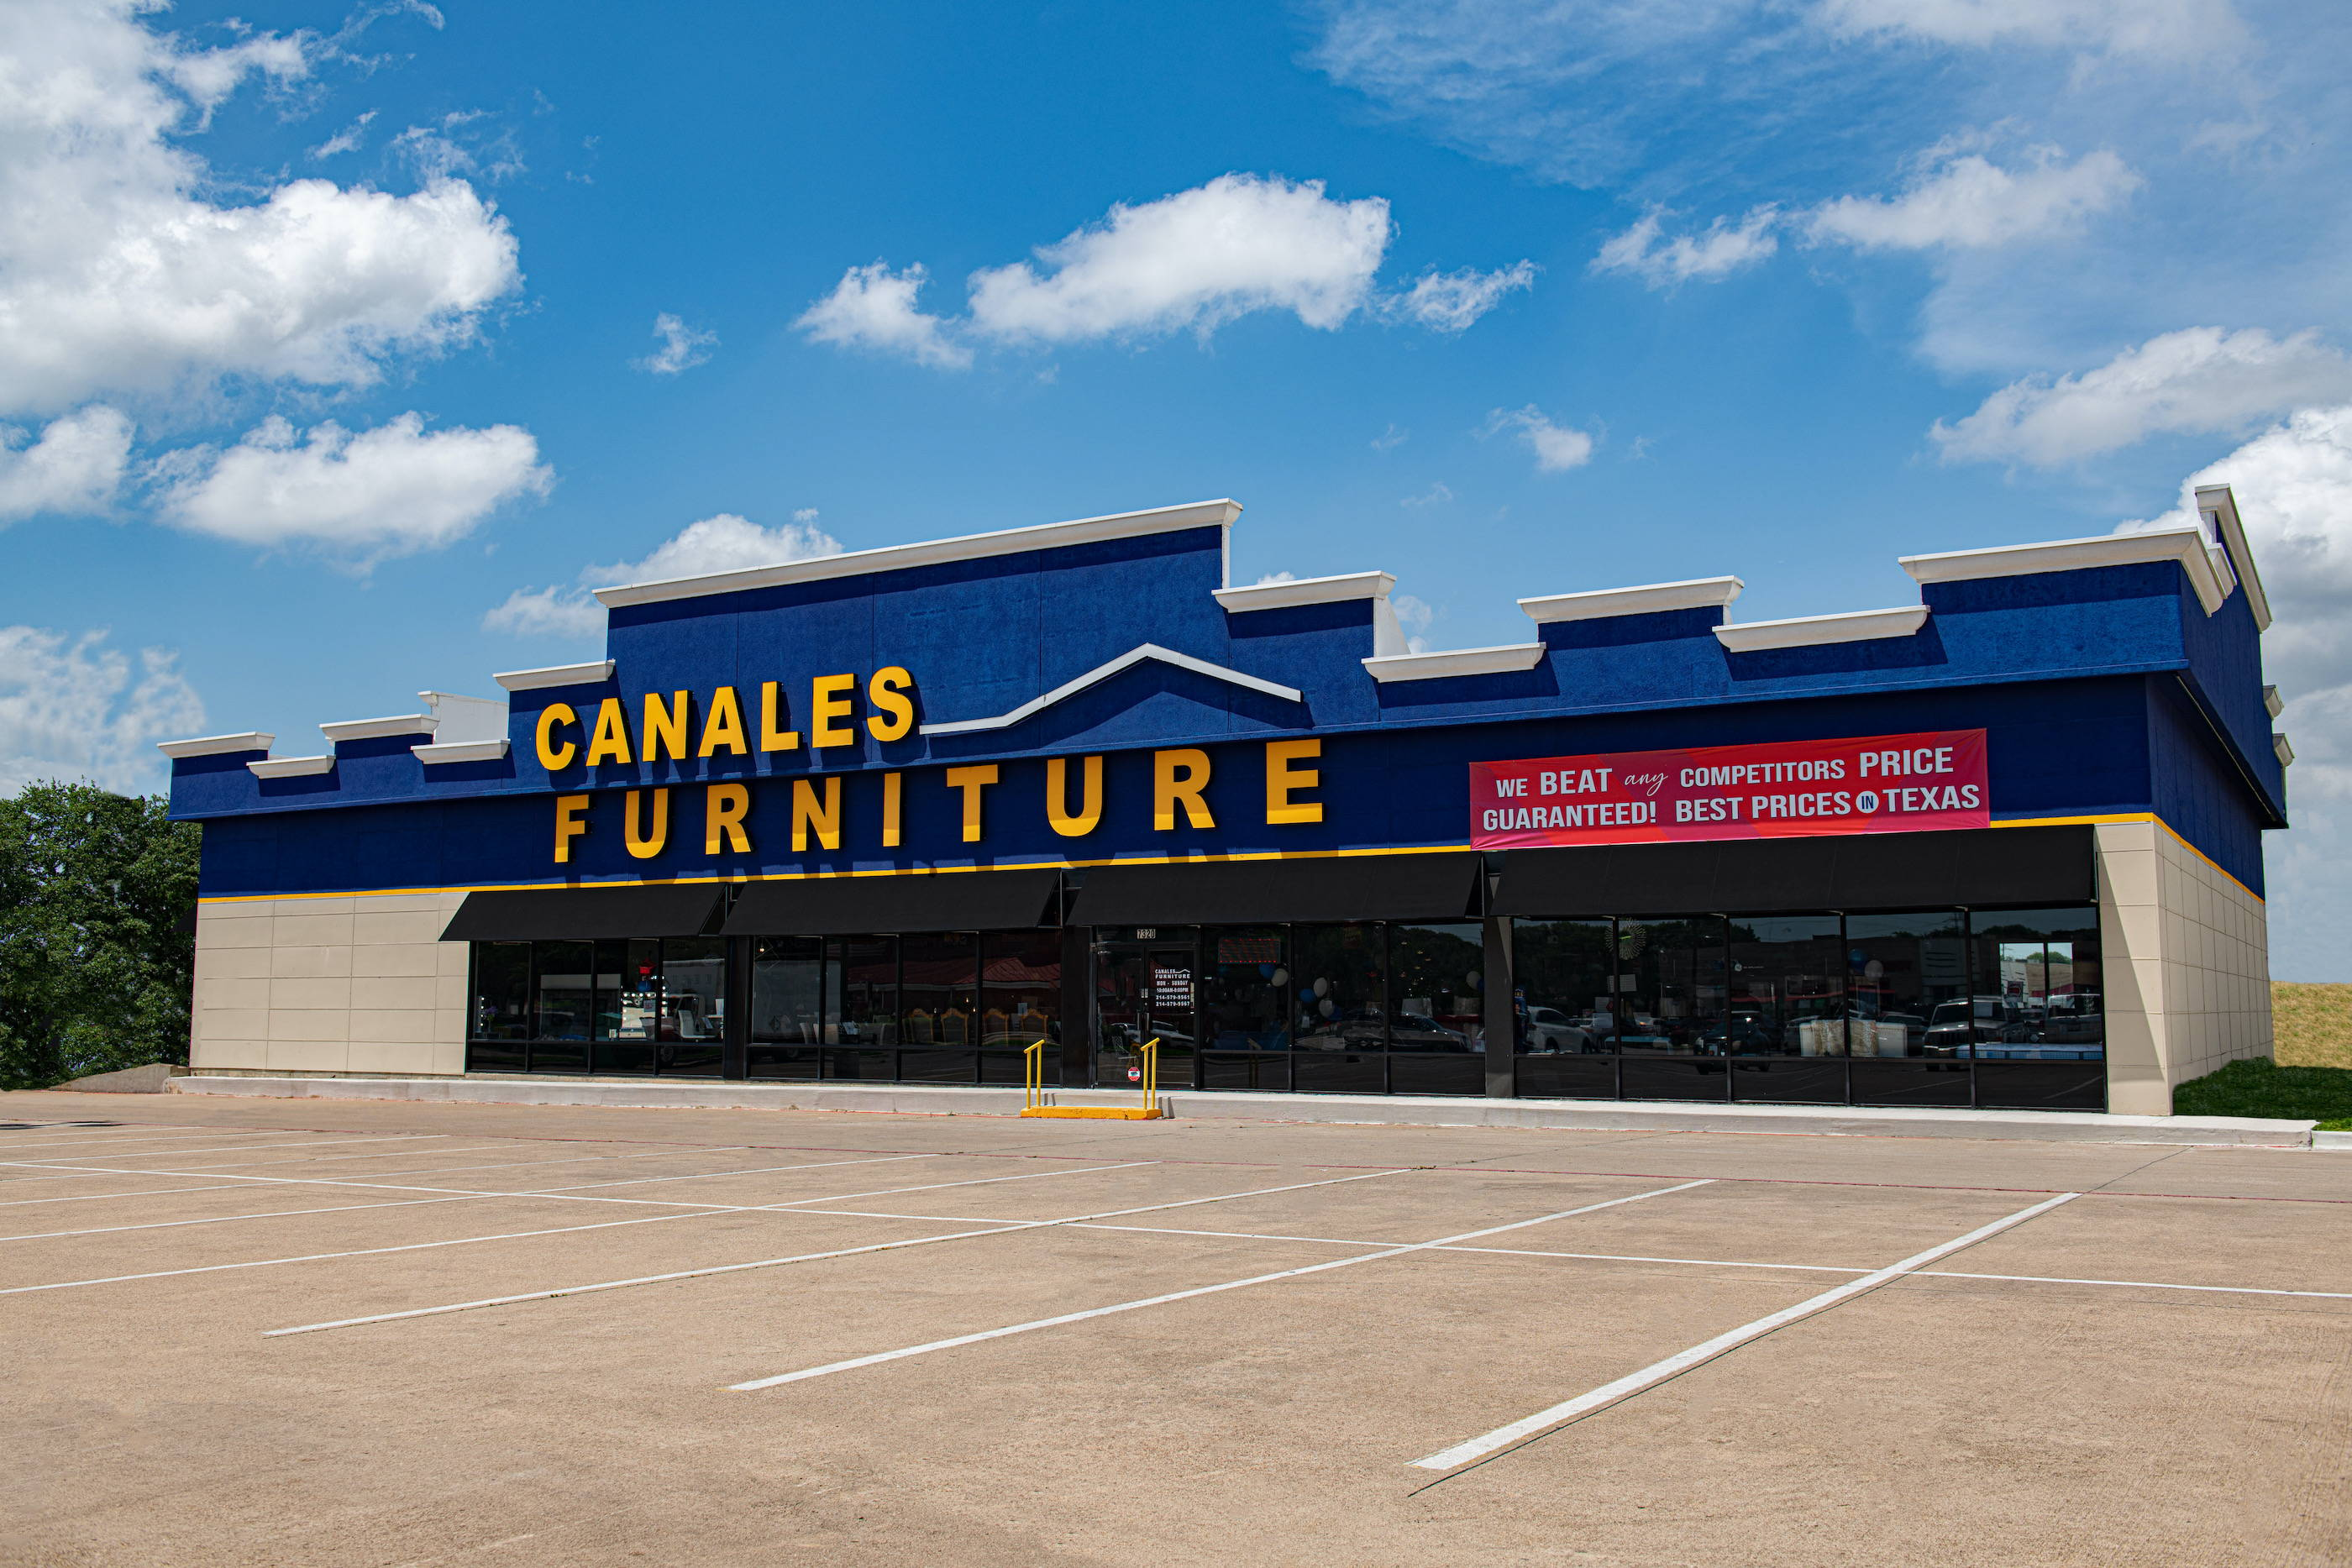 Cockrell Hill– Canales Furniture